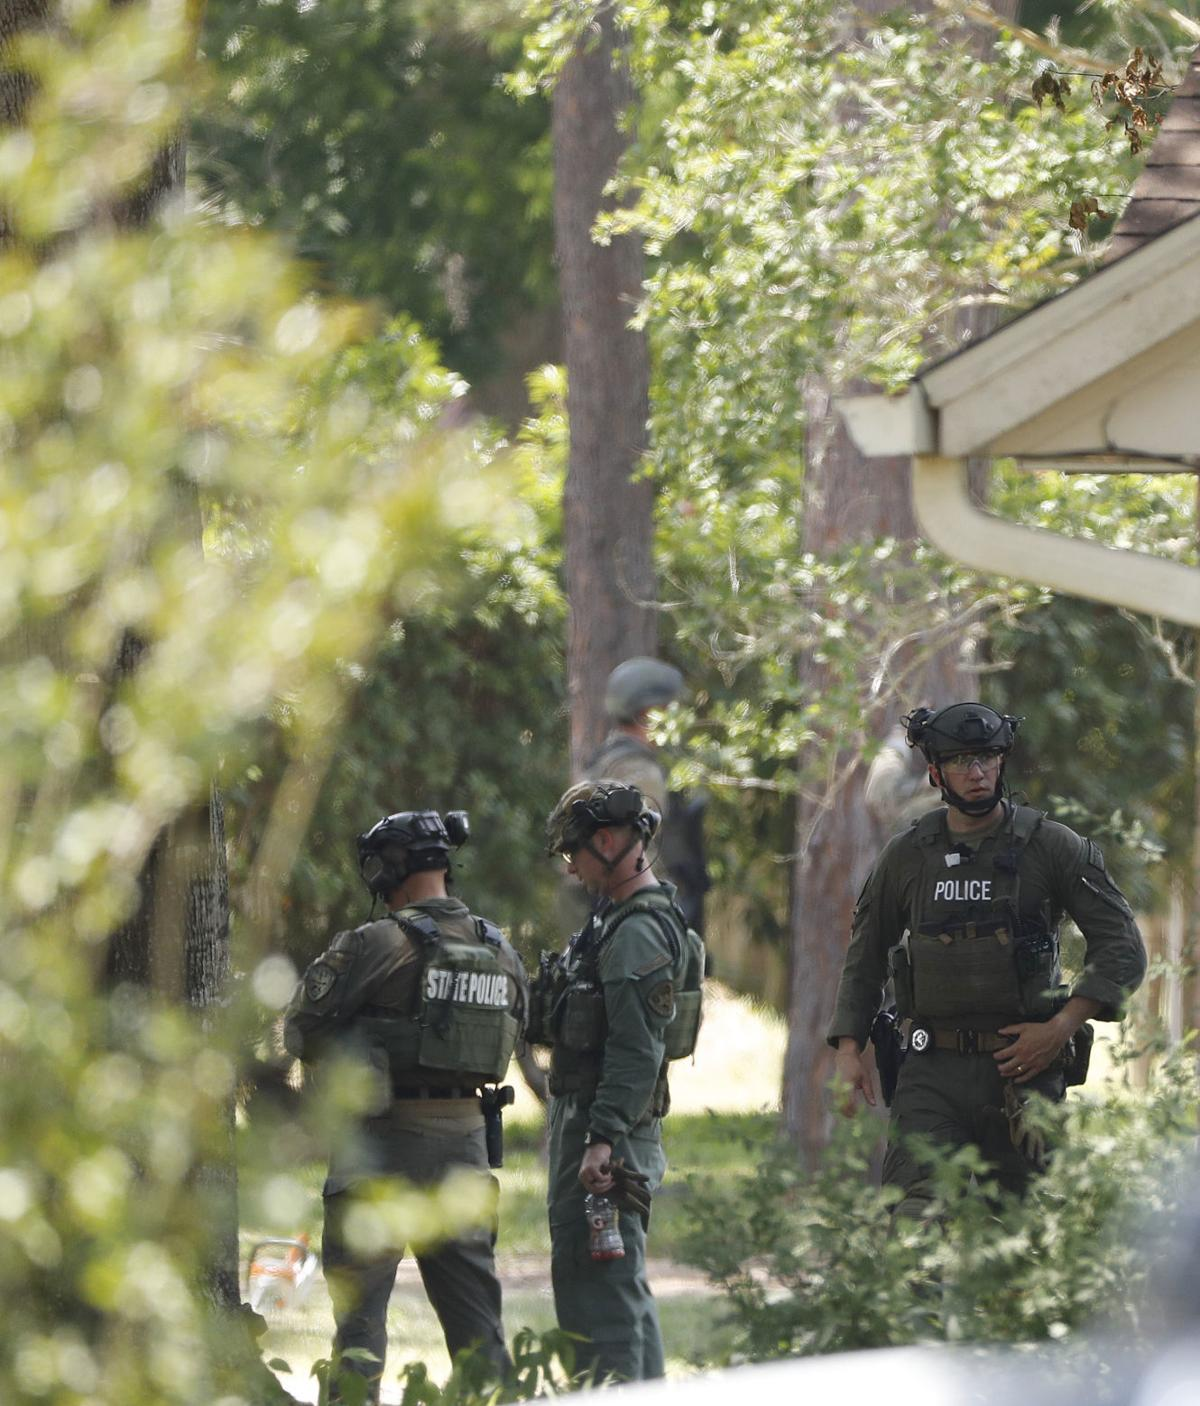 Santa Fe News >> Police Find Explosive Devices At Alvin House And In Santa Fe School